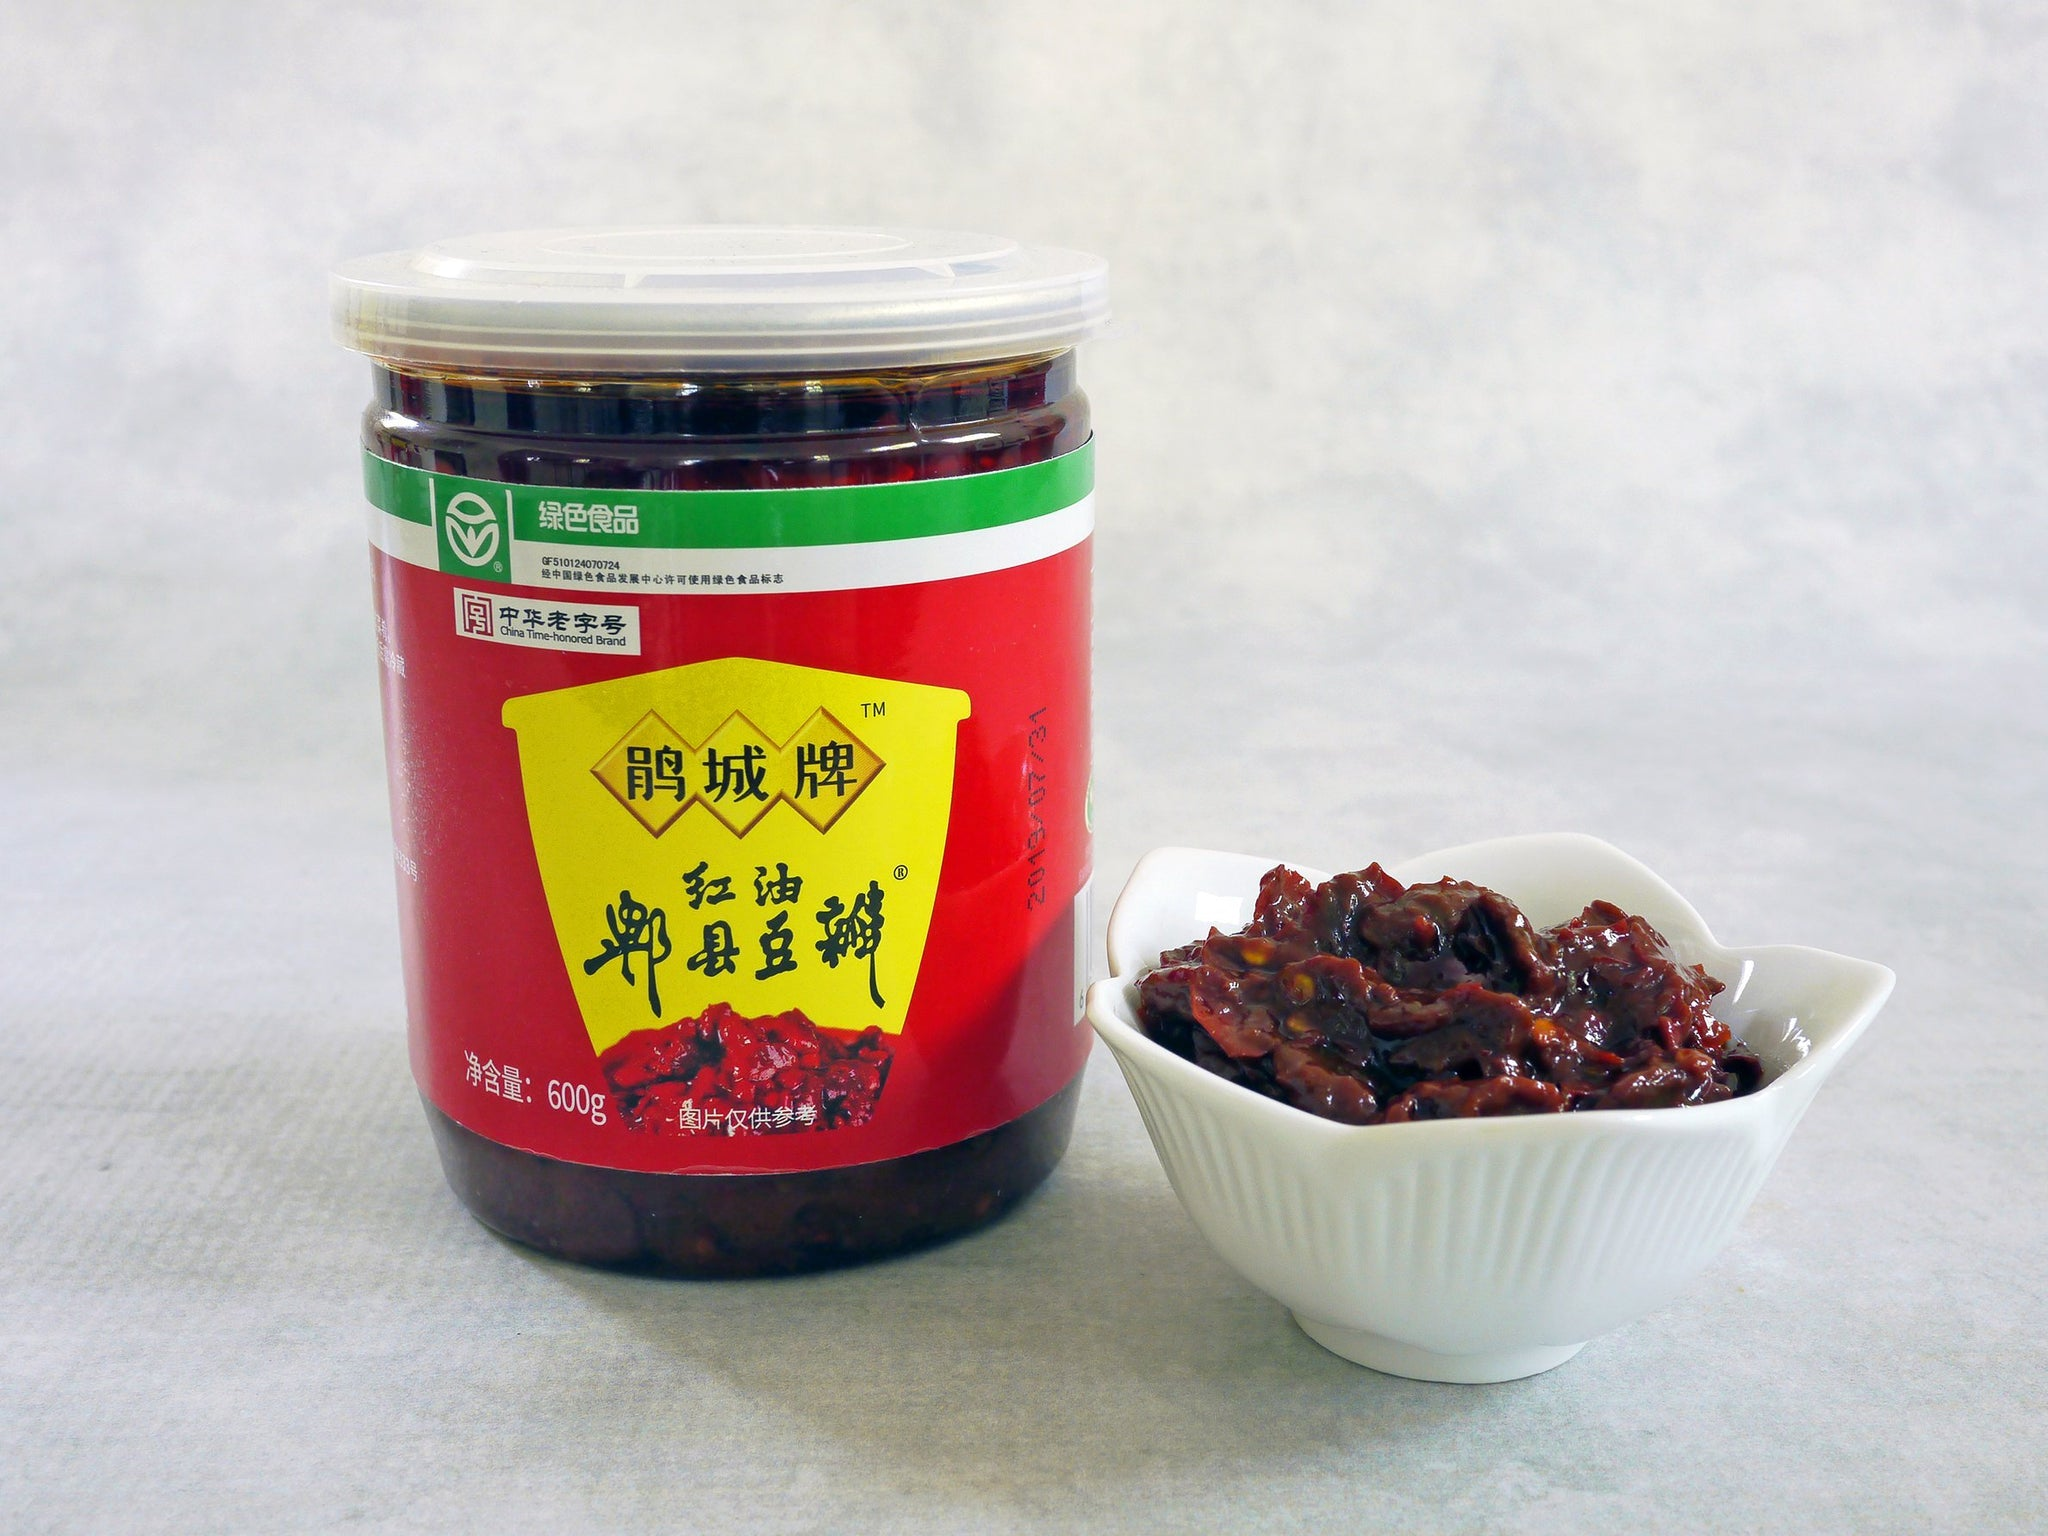 Red-Oil Pixian Chili Bean Paste (Hong You Doubanjiang)